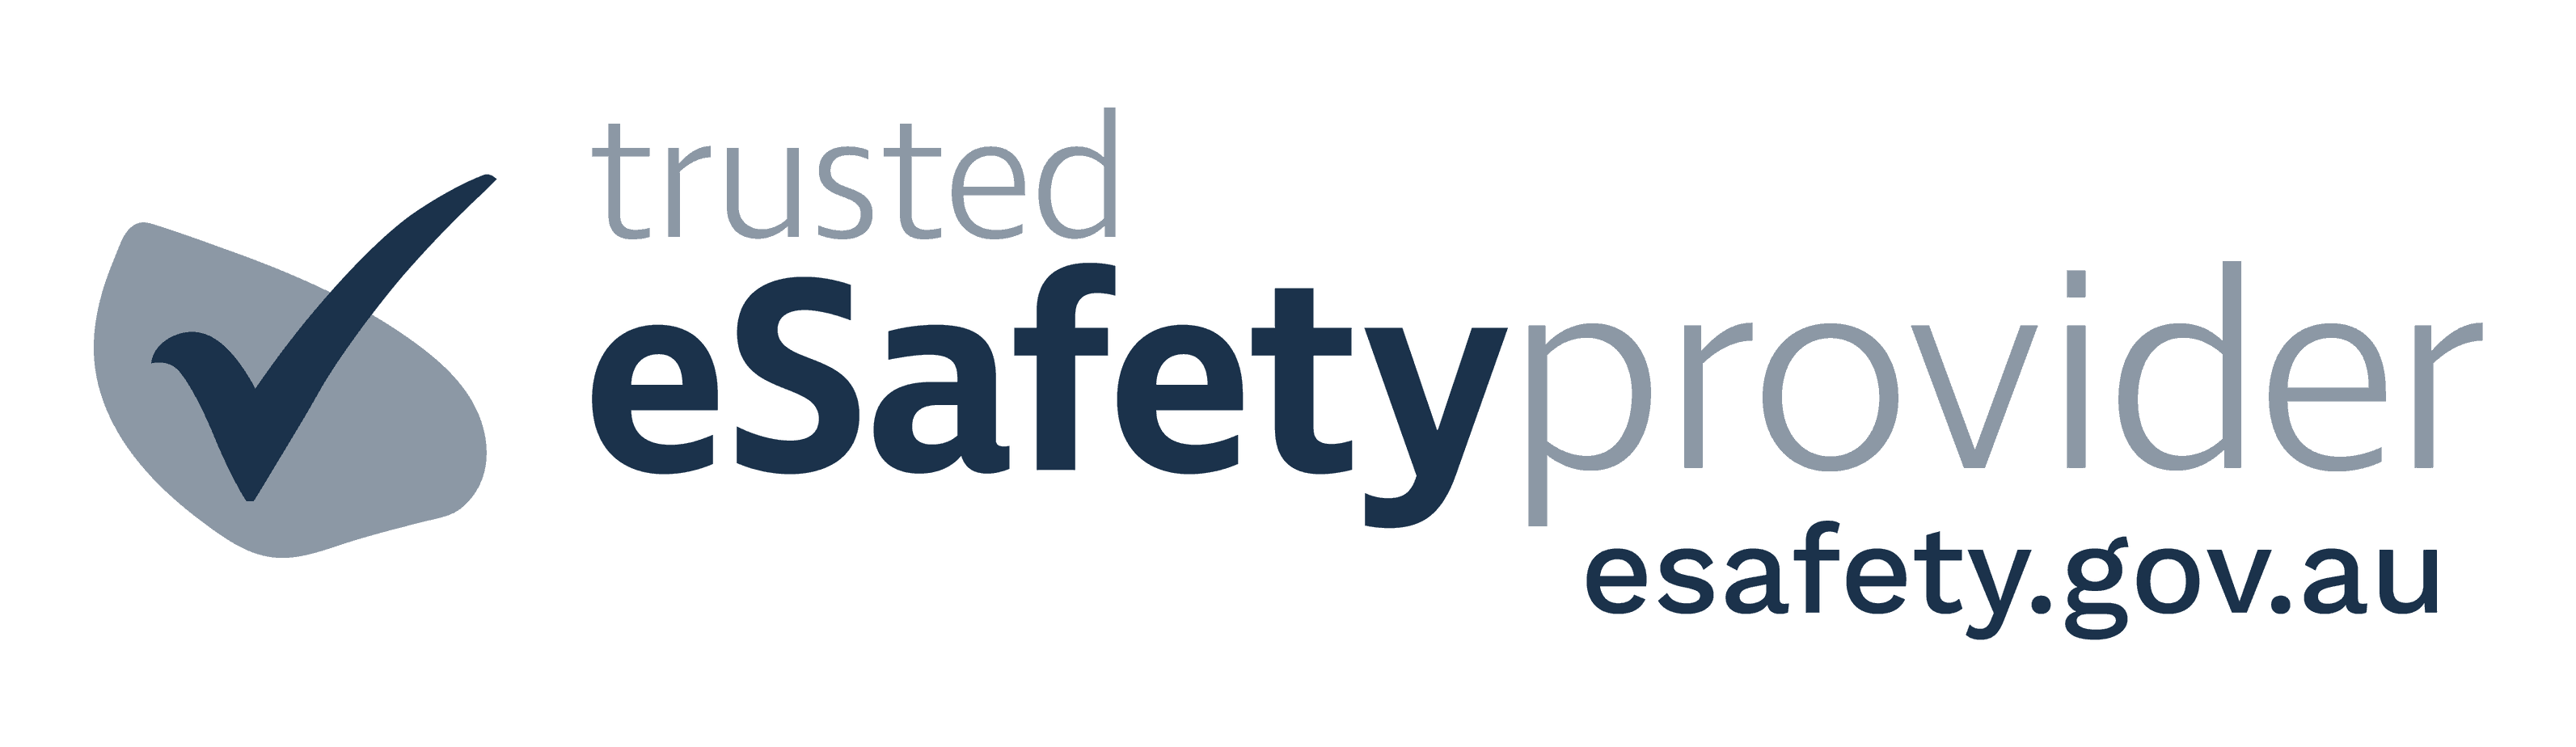 Trusted eSafety Provider logo